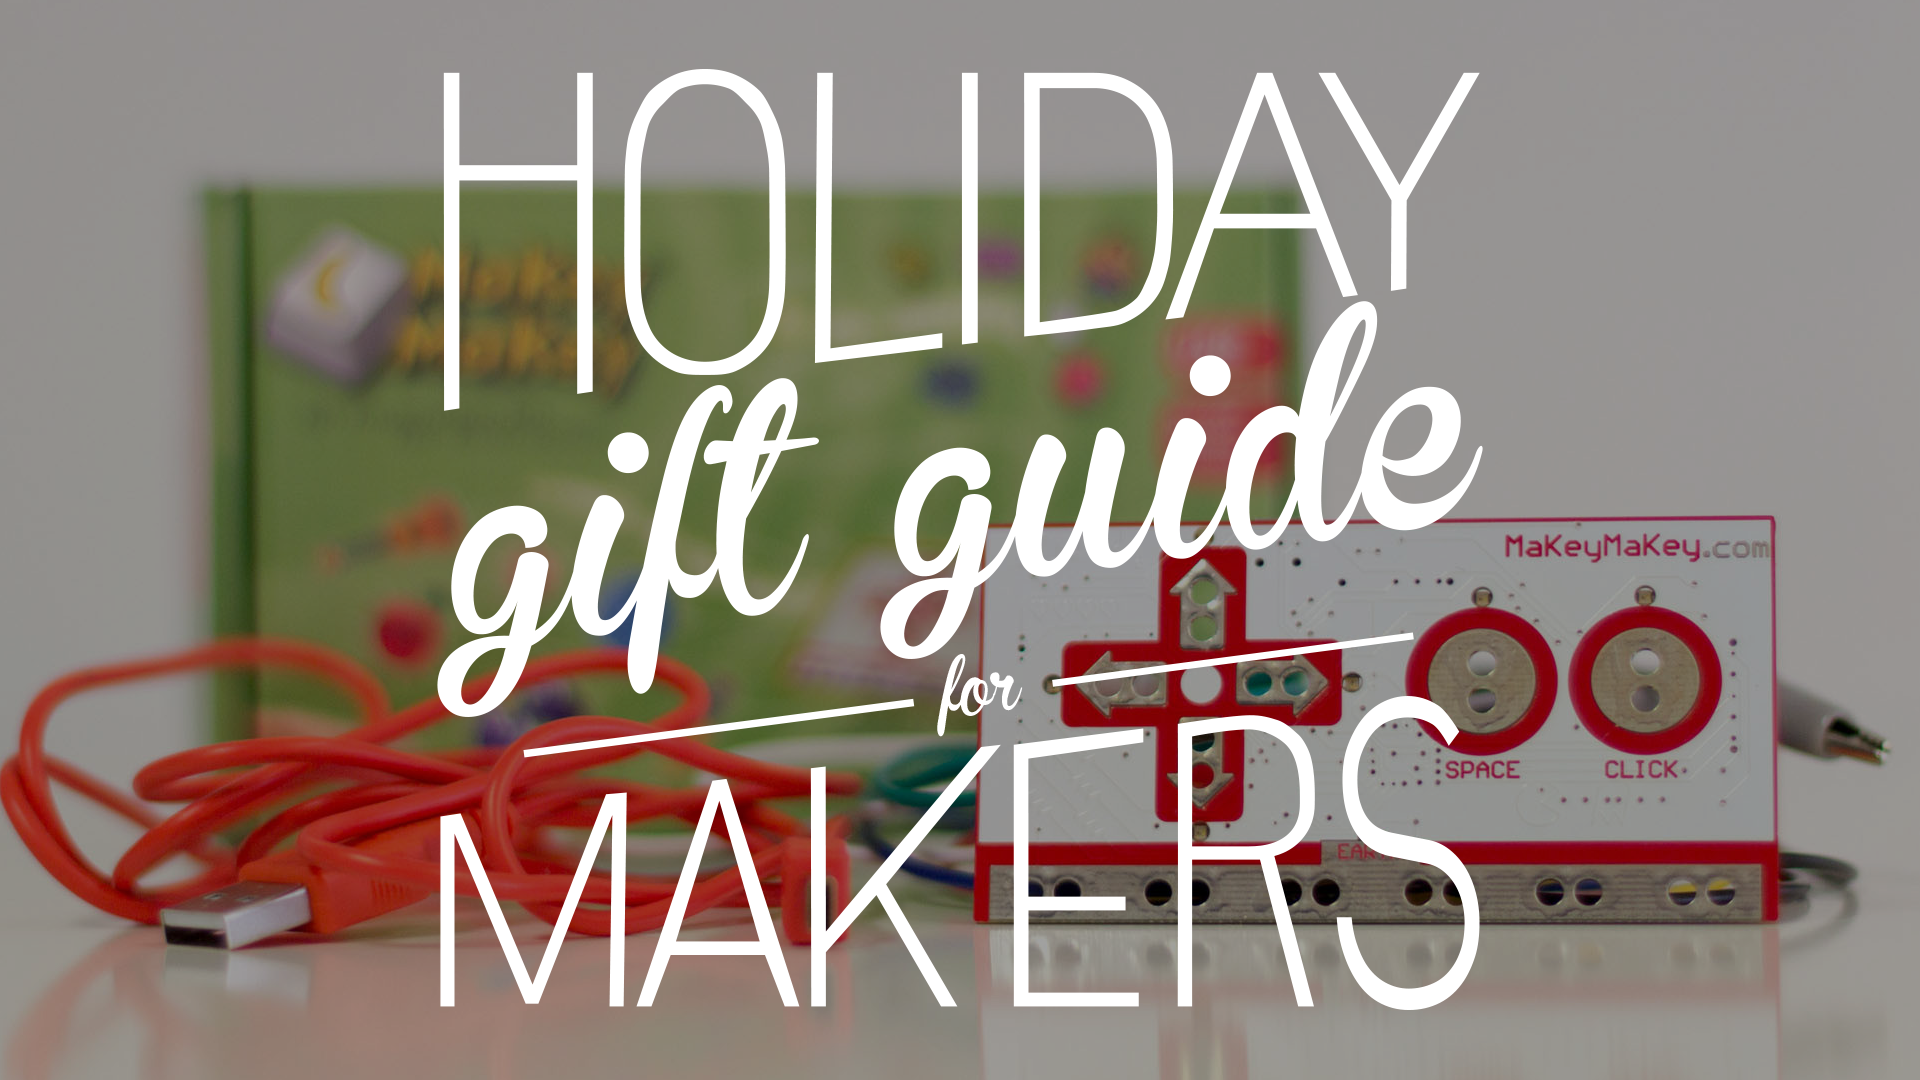 Artefacts Holiday Gift Guide For Little Makers Artefact Stories Lightup Electronic Blocks And Ar App Teaches Kids Circuitry Basics Medium